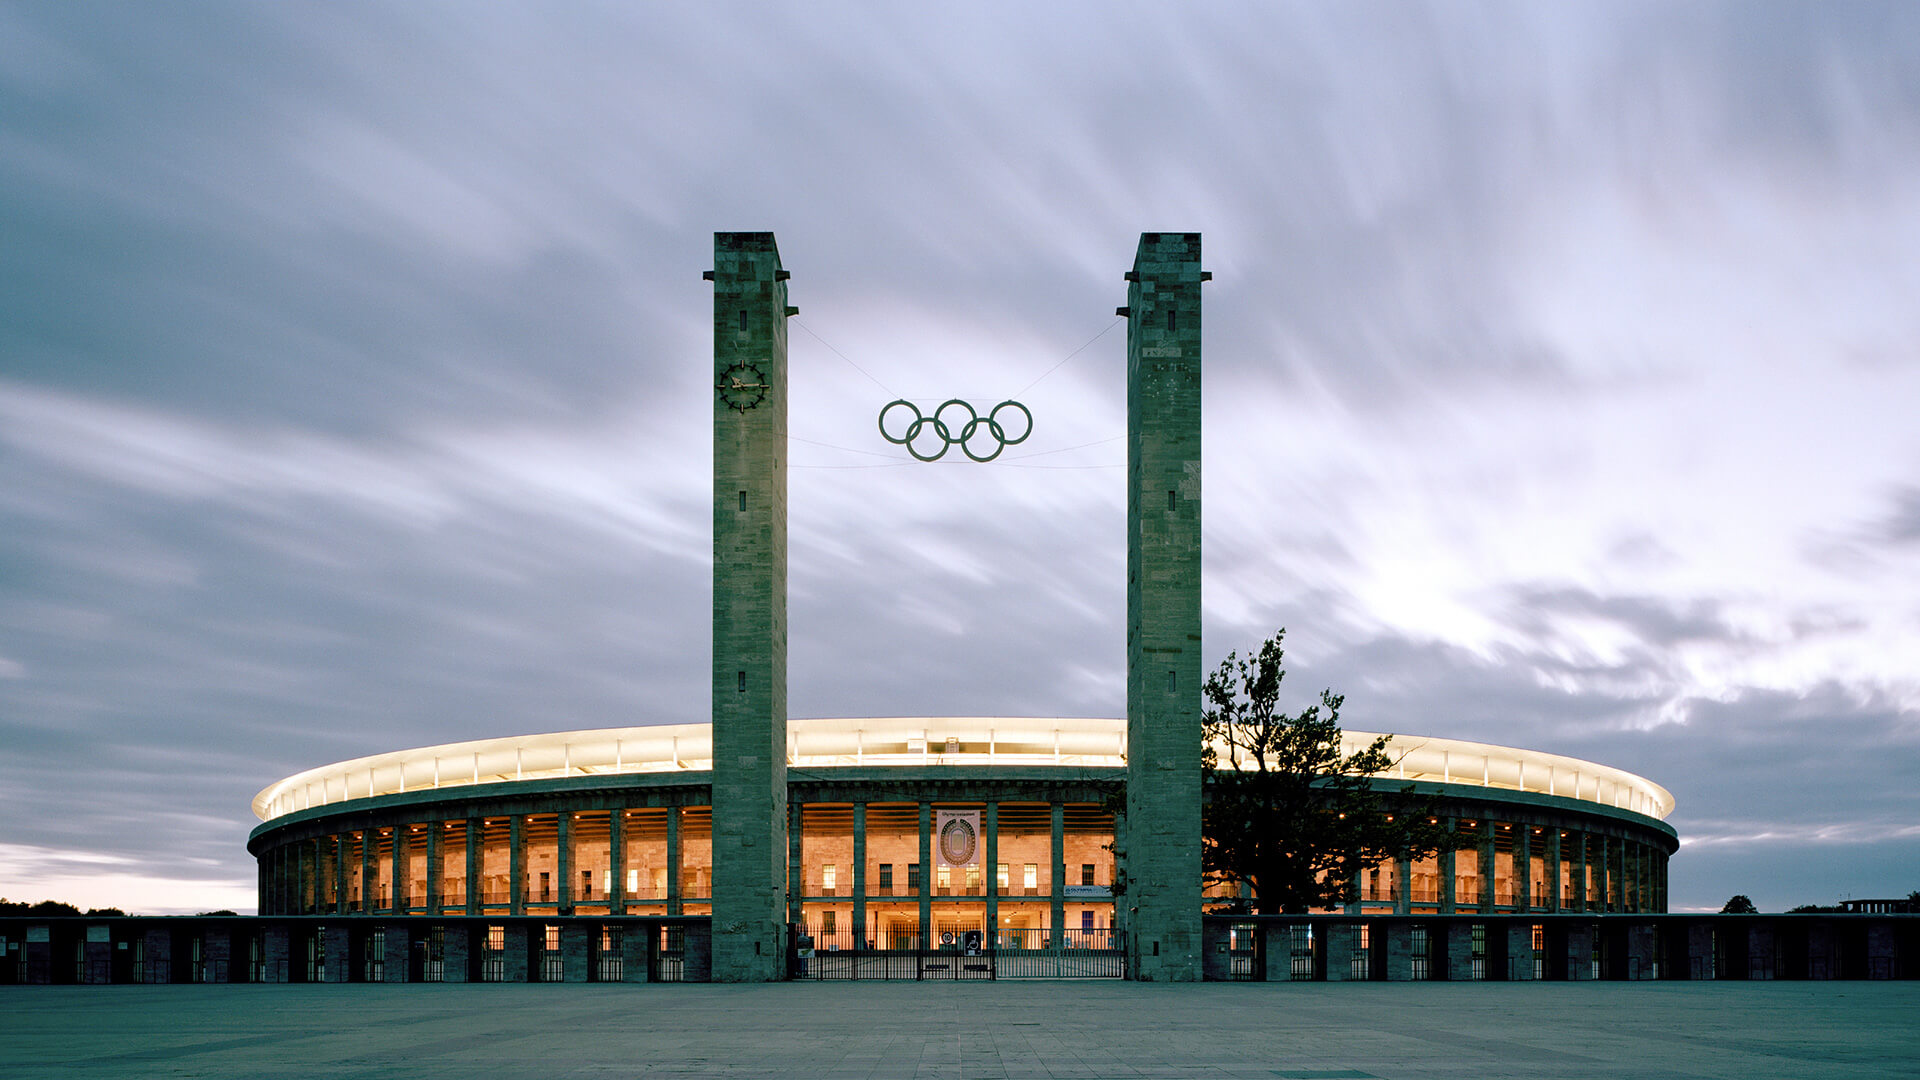 Olympiastation Berlin